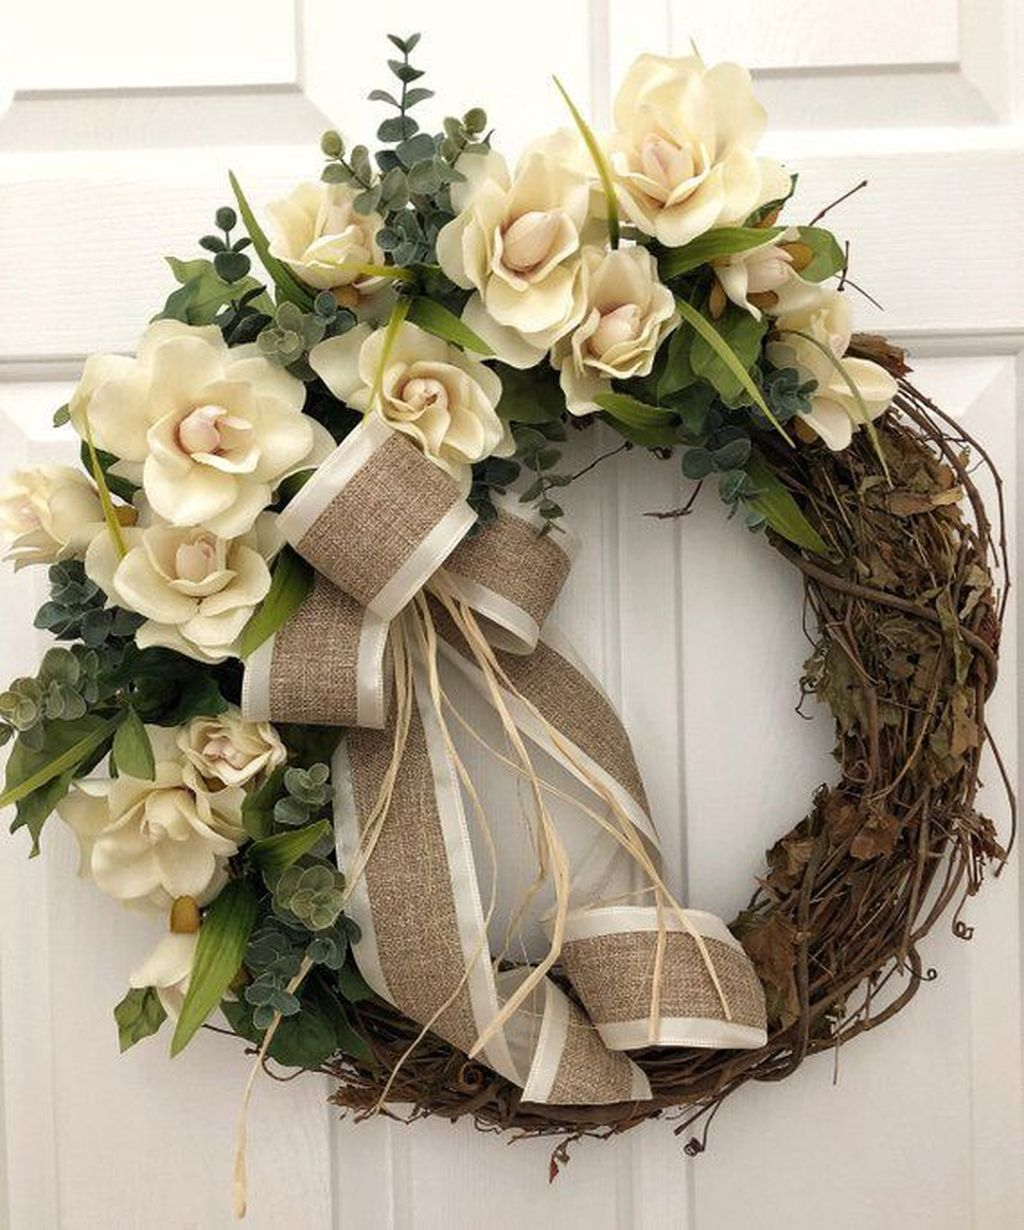 Awesome Winter Door Wreaths You Can Try This Season 32